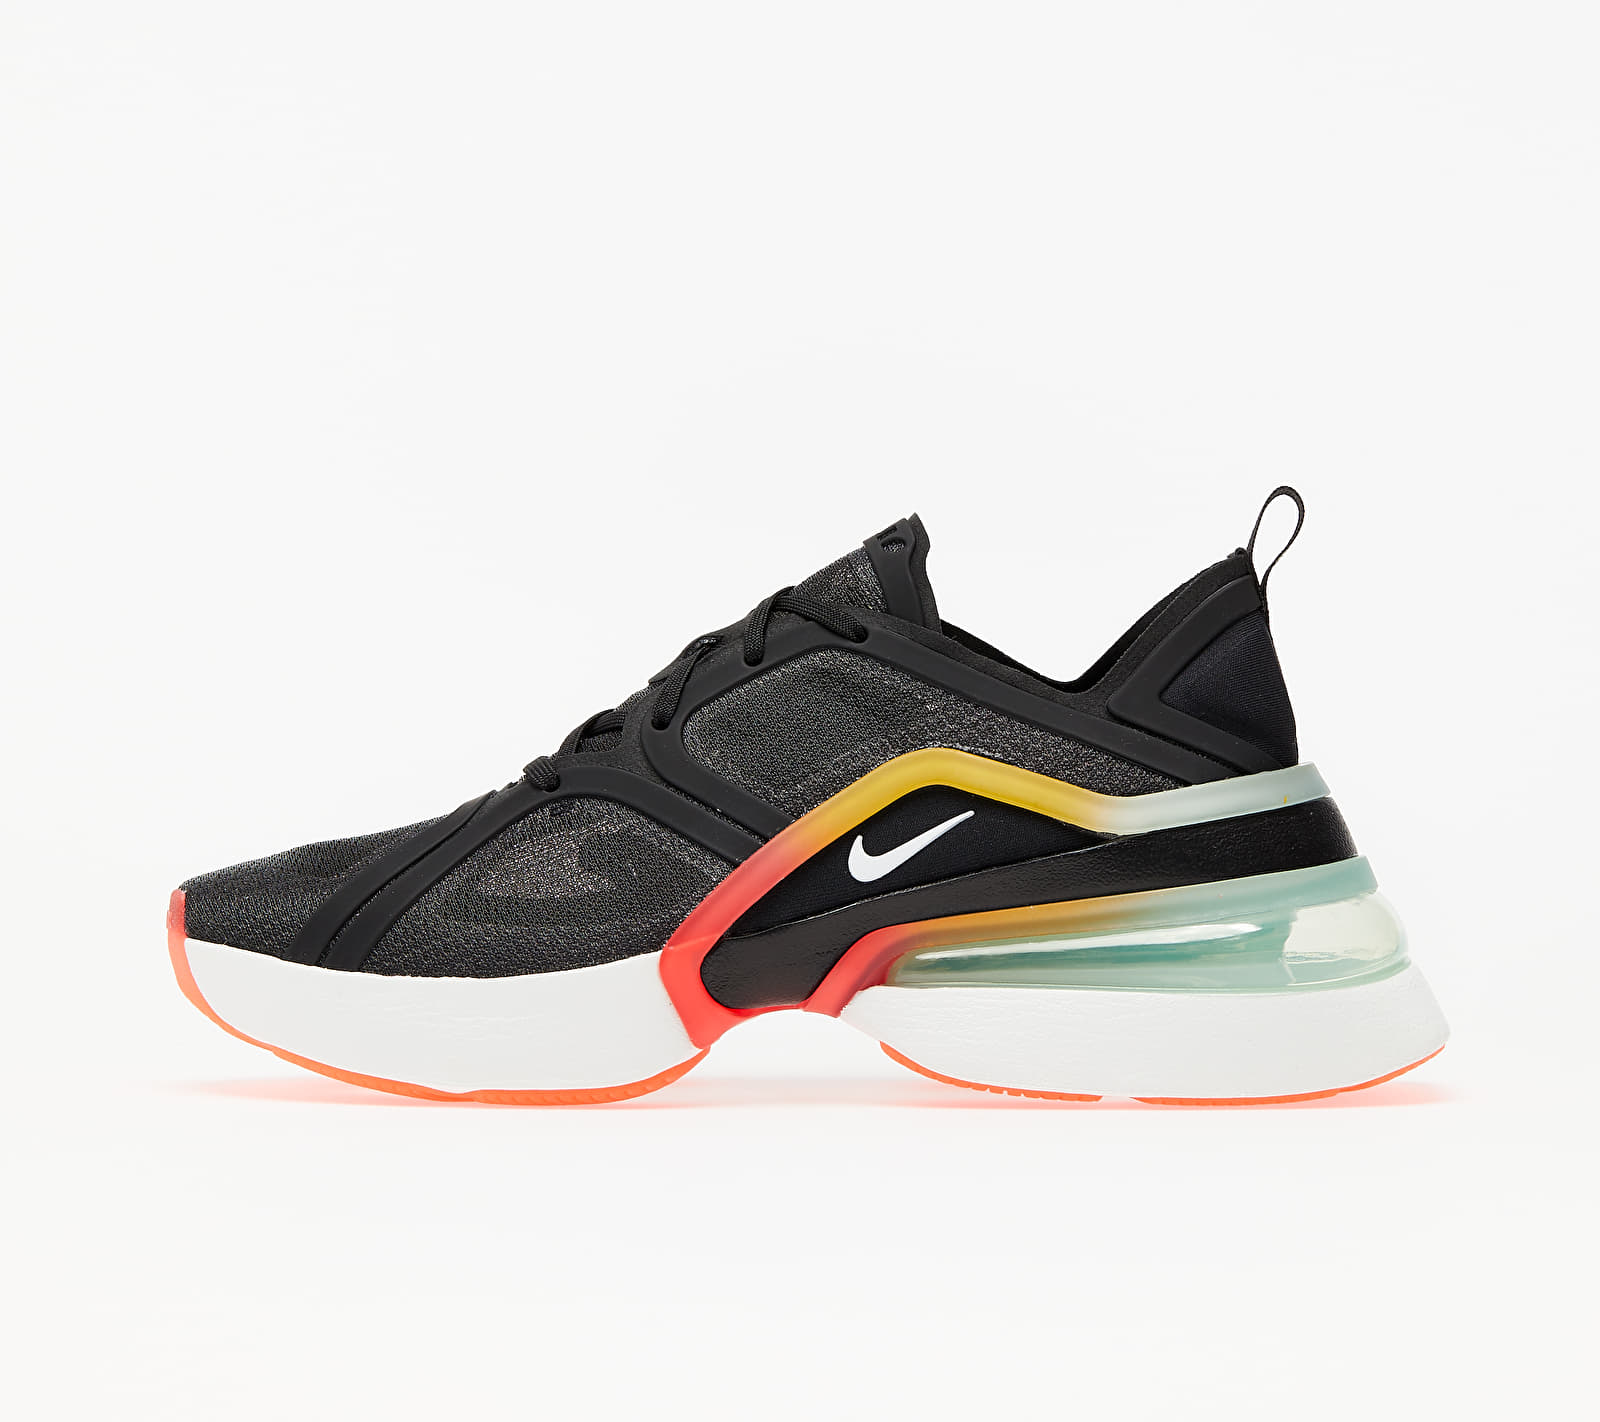 Nike W Air Max 270 XX Black/ White-Bright Crimson EUR 41